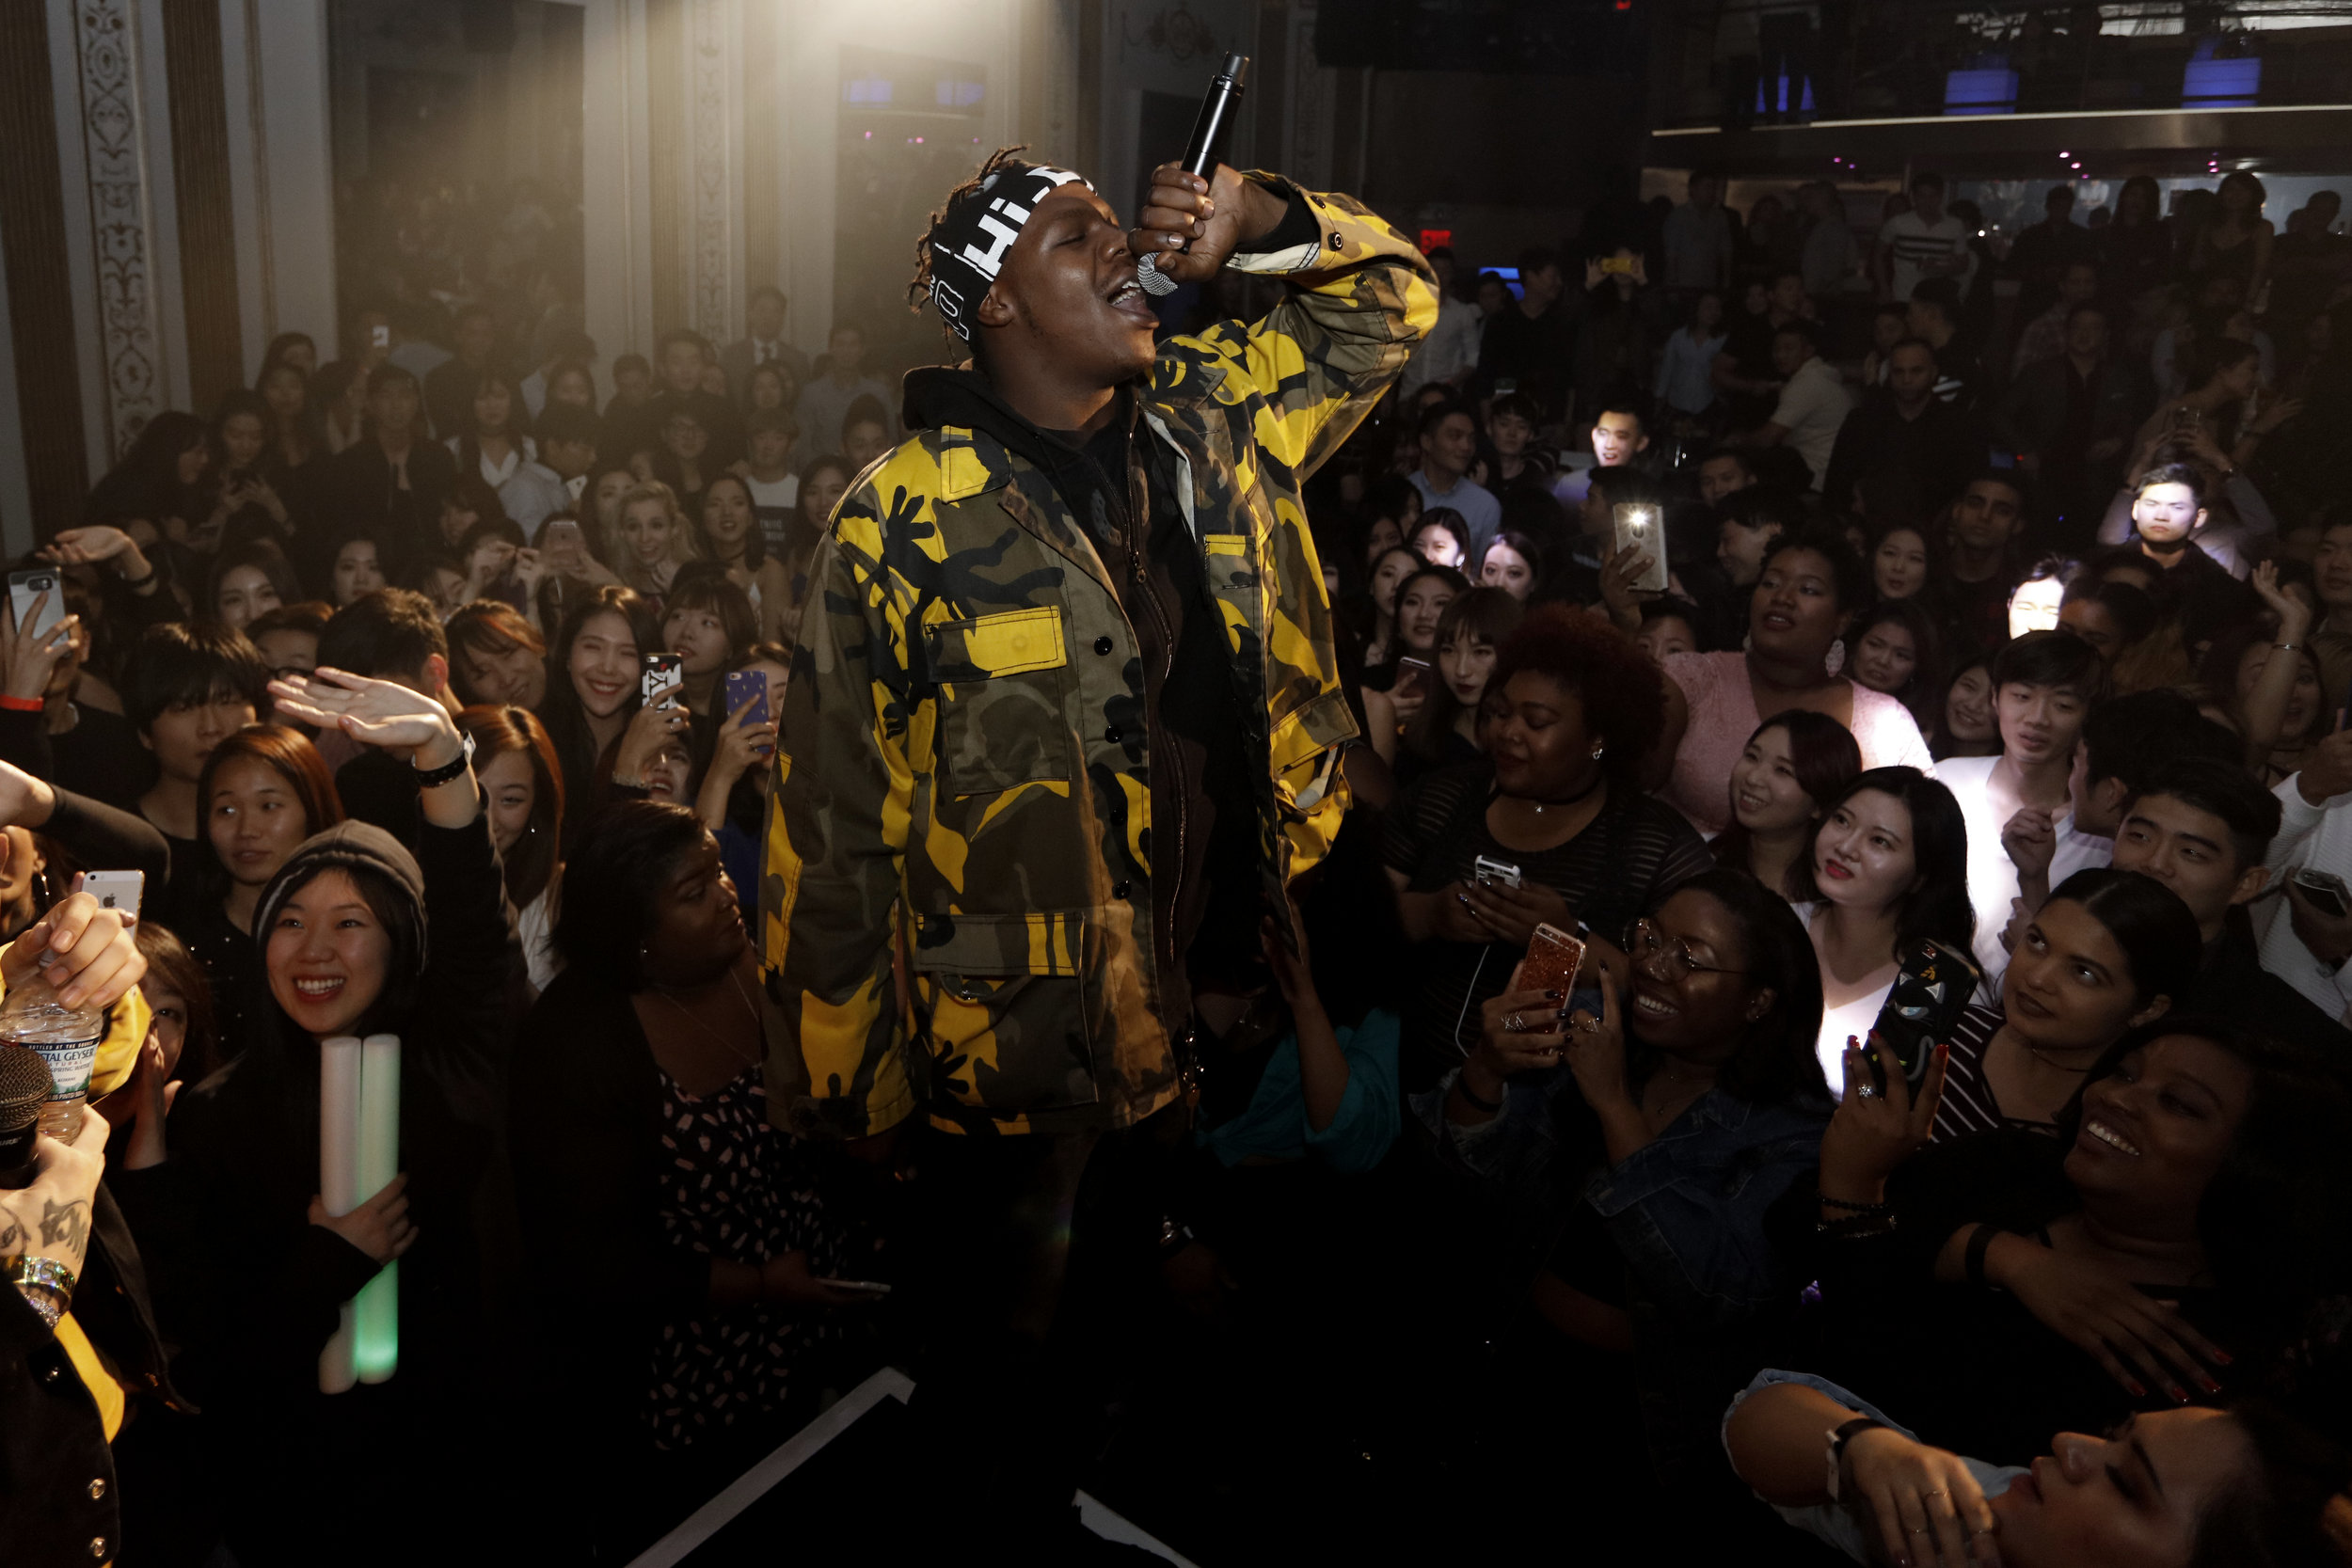 ASAP TyY, joined by Korean rap stars; Cjamm and BewhY, owned the stage at CIRCLE NYC, a famous nightclub in Midtown Manhattan.